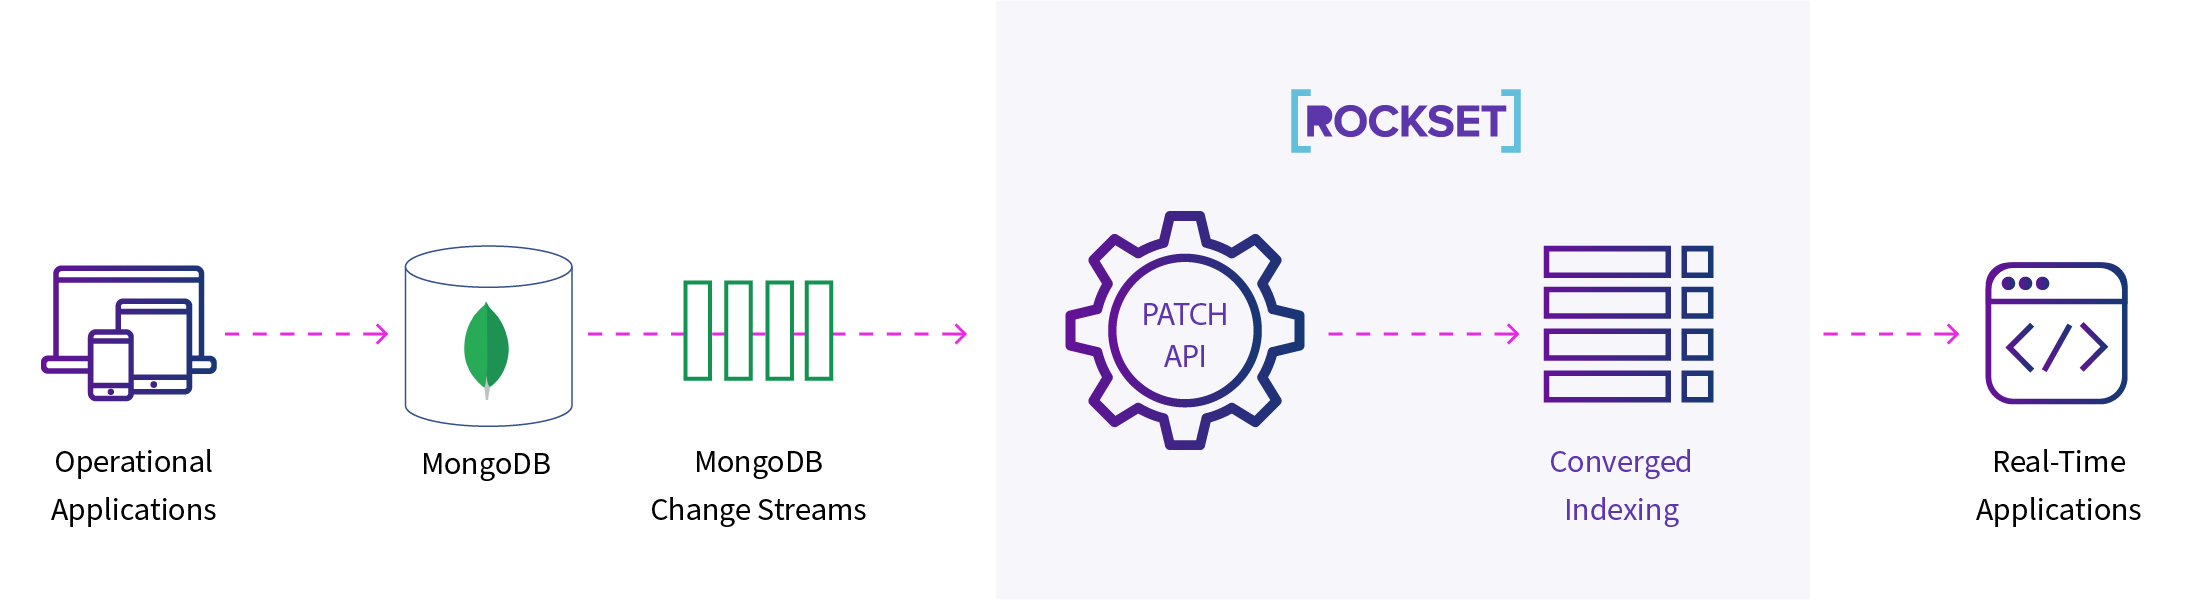 mongodb rockset patch api